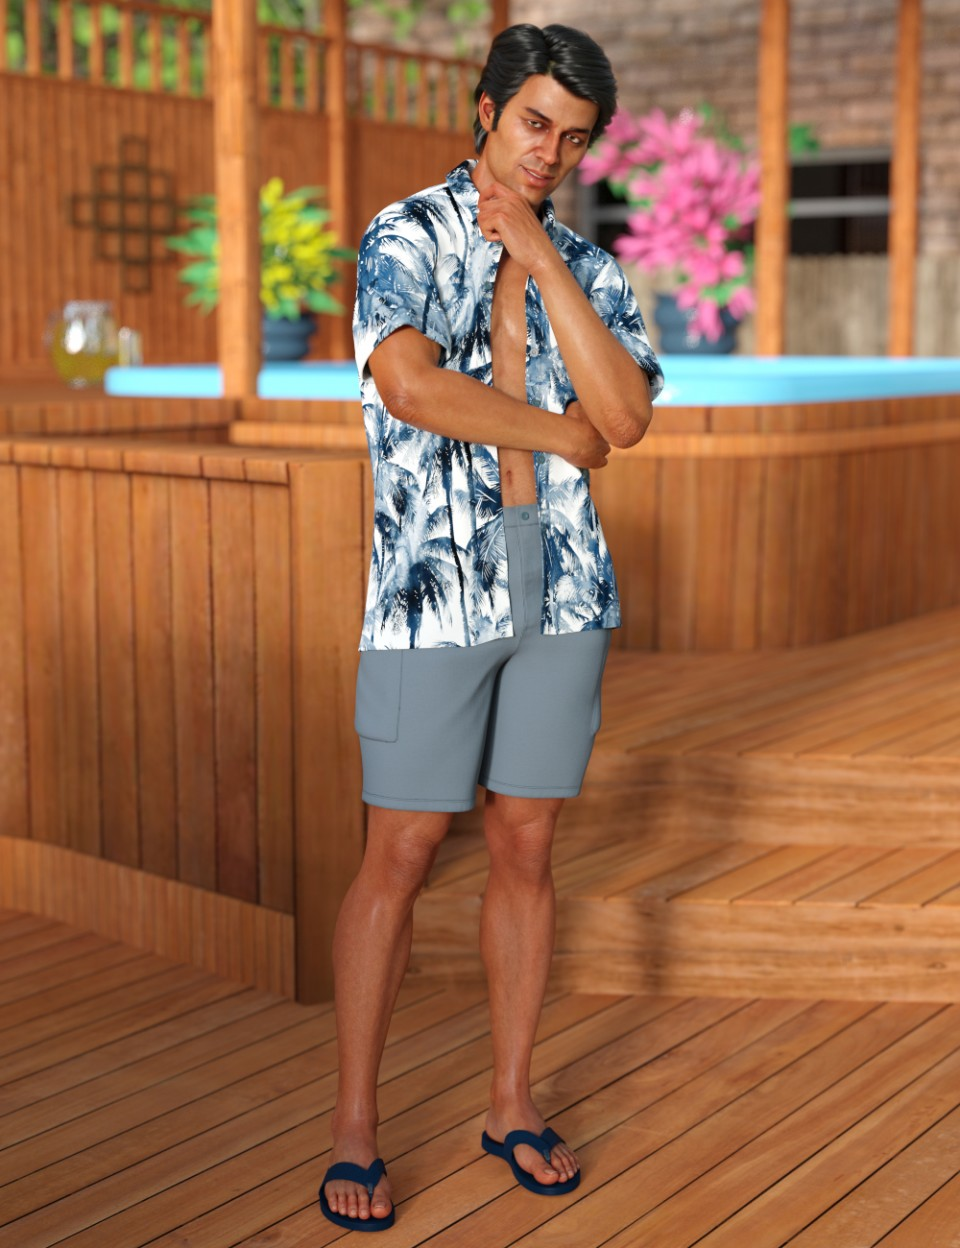 dForce Poolside Oahu Outfit for Genesis 8 Male(s)_DAZ3D下载站